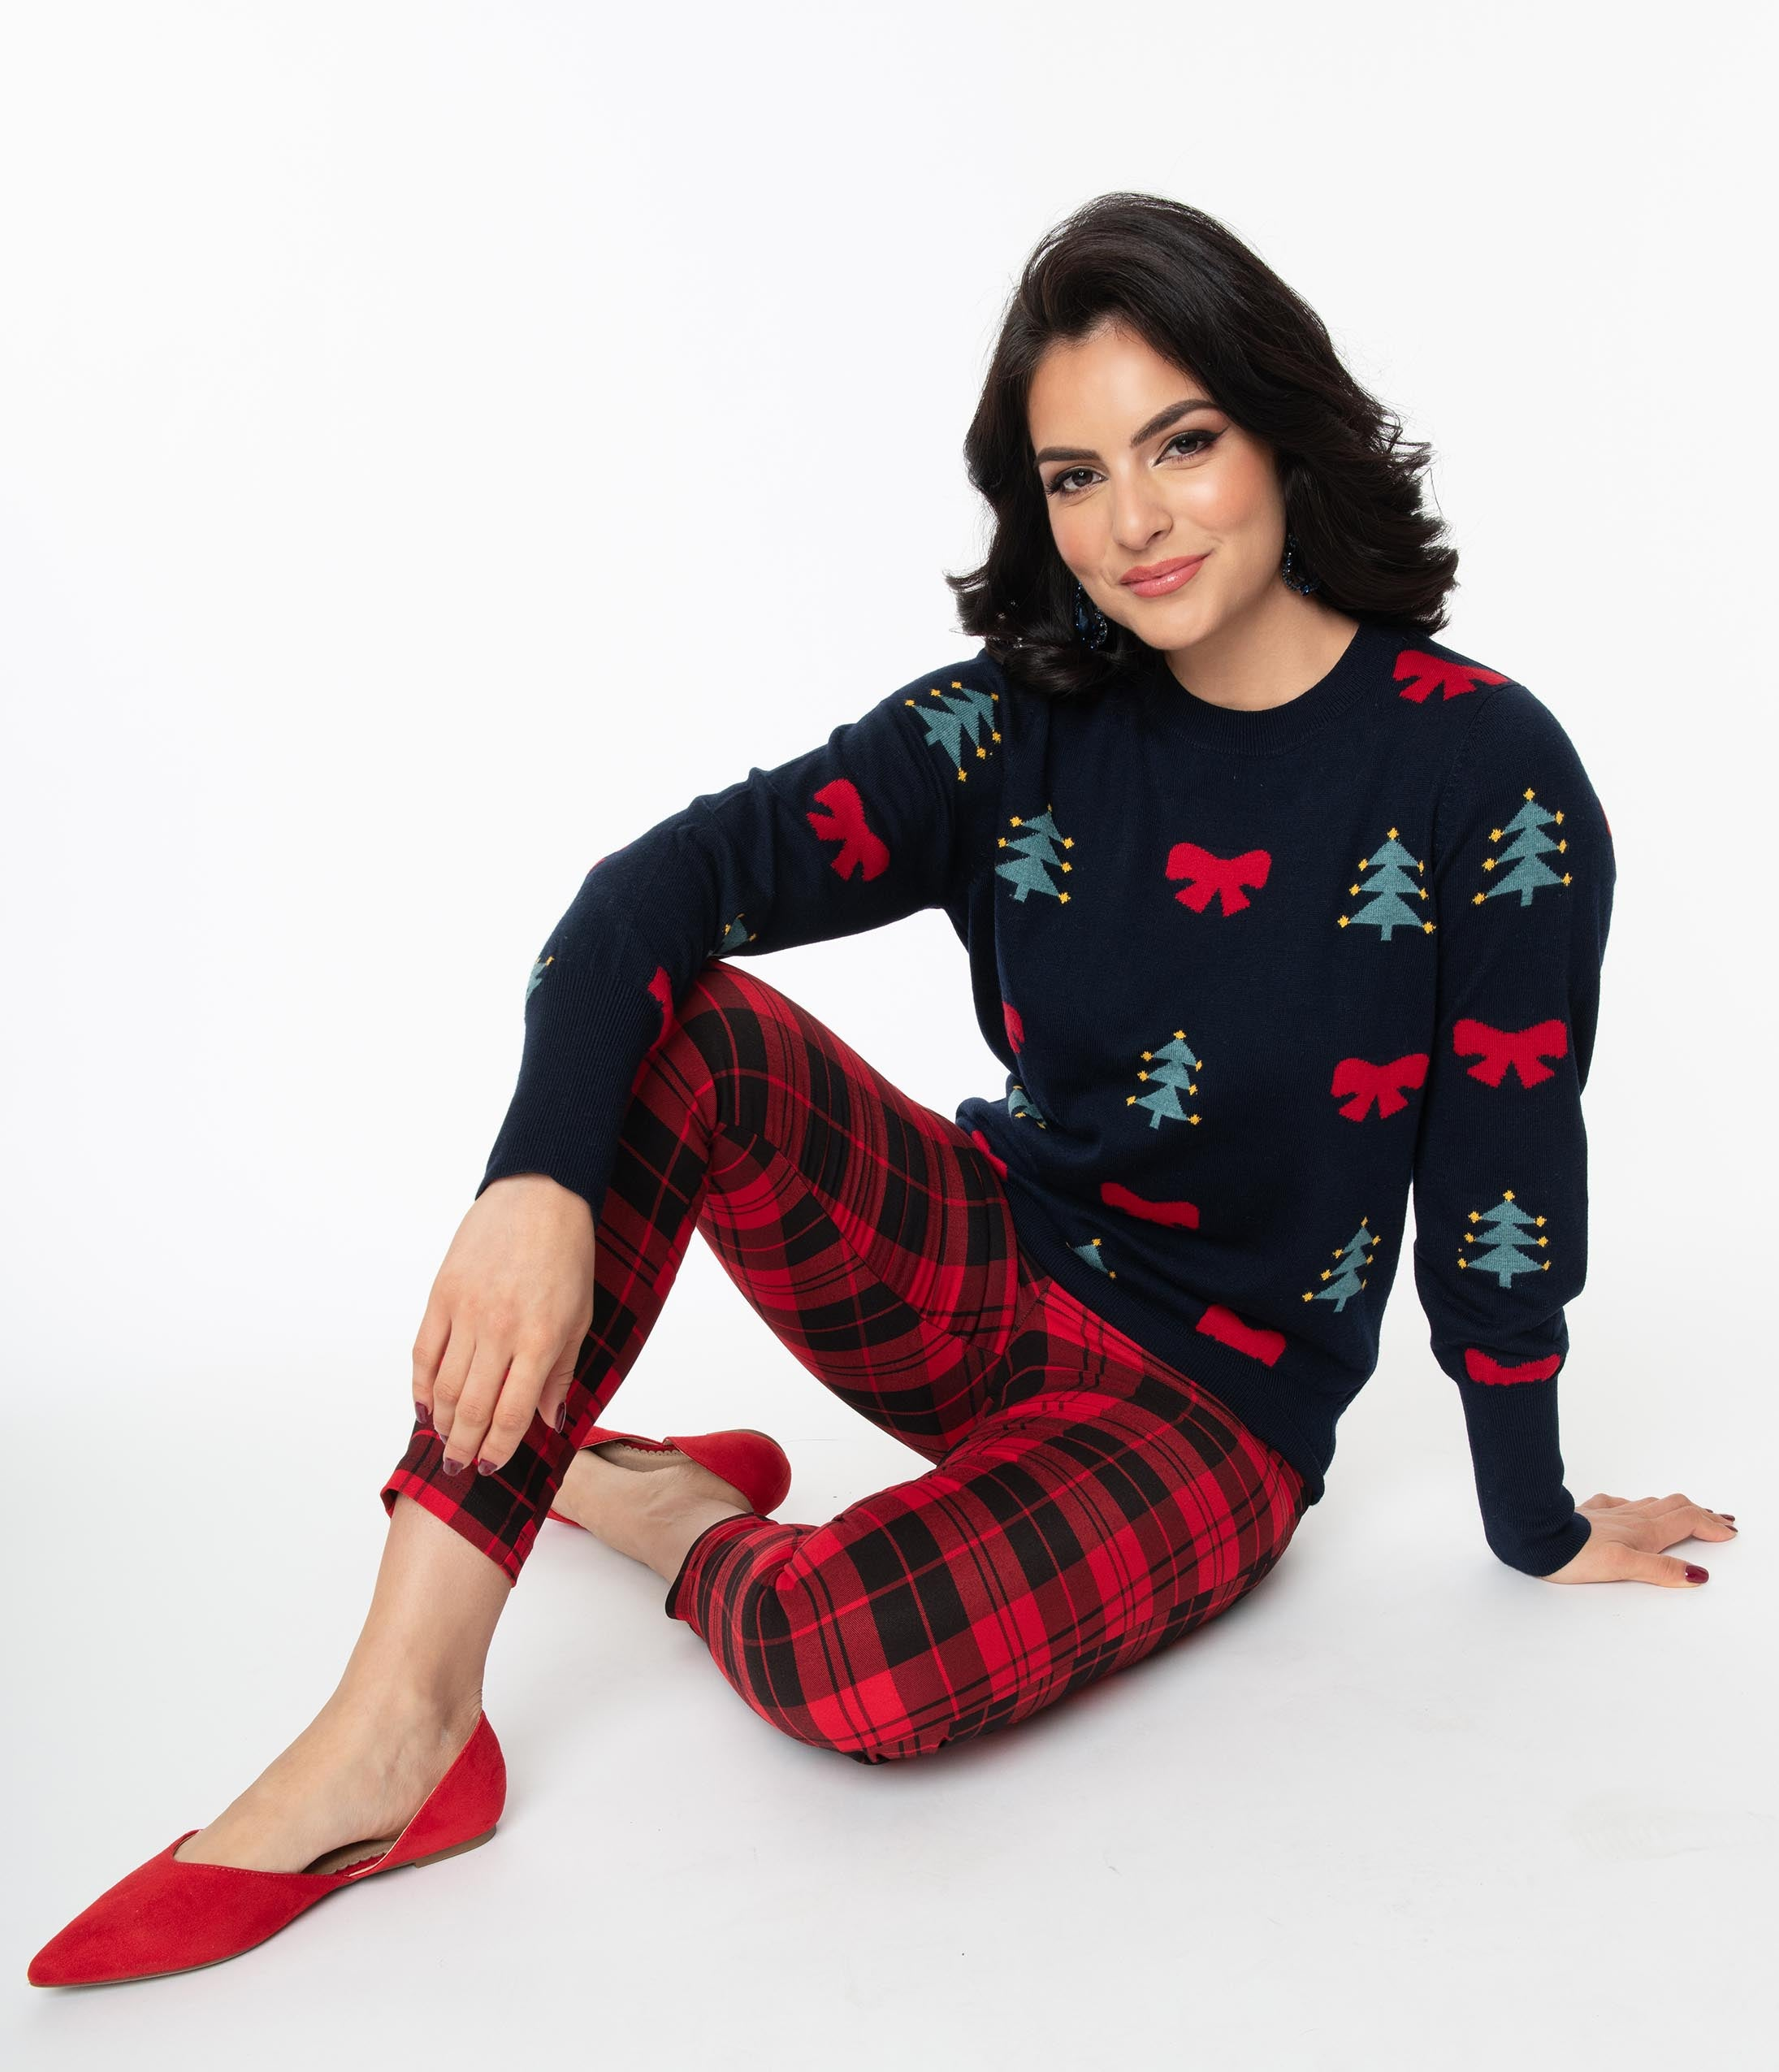 Vintage Red Dresses | Valentines Day Dresses, Outfits, Lingerie Navy Christmas Tree  Red Bow Pattern Sweater $62.00 AT vintagedancer.com